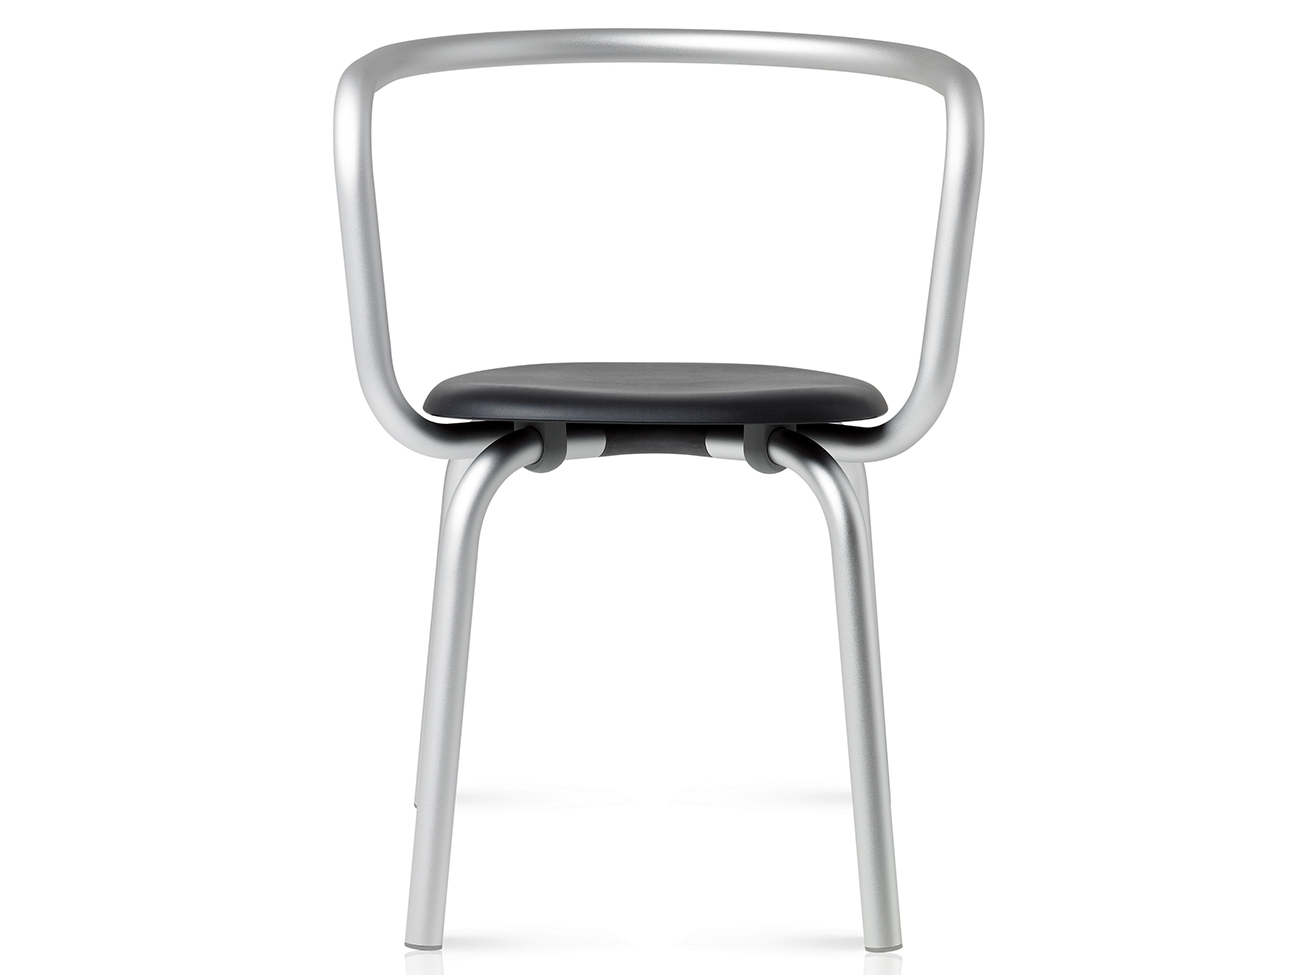 designapplause parrish chair konstantin grcic. Black Bedroom Furniture Sets. Home Design Ideas